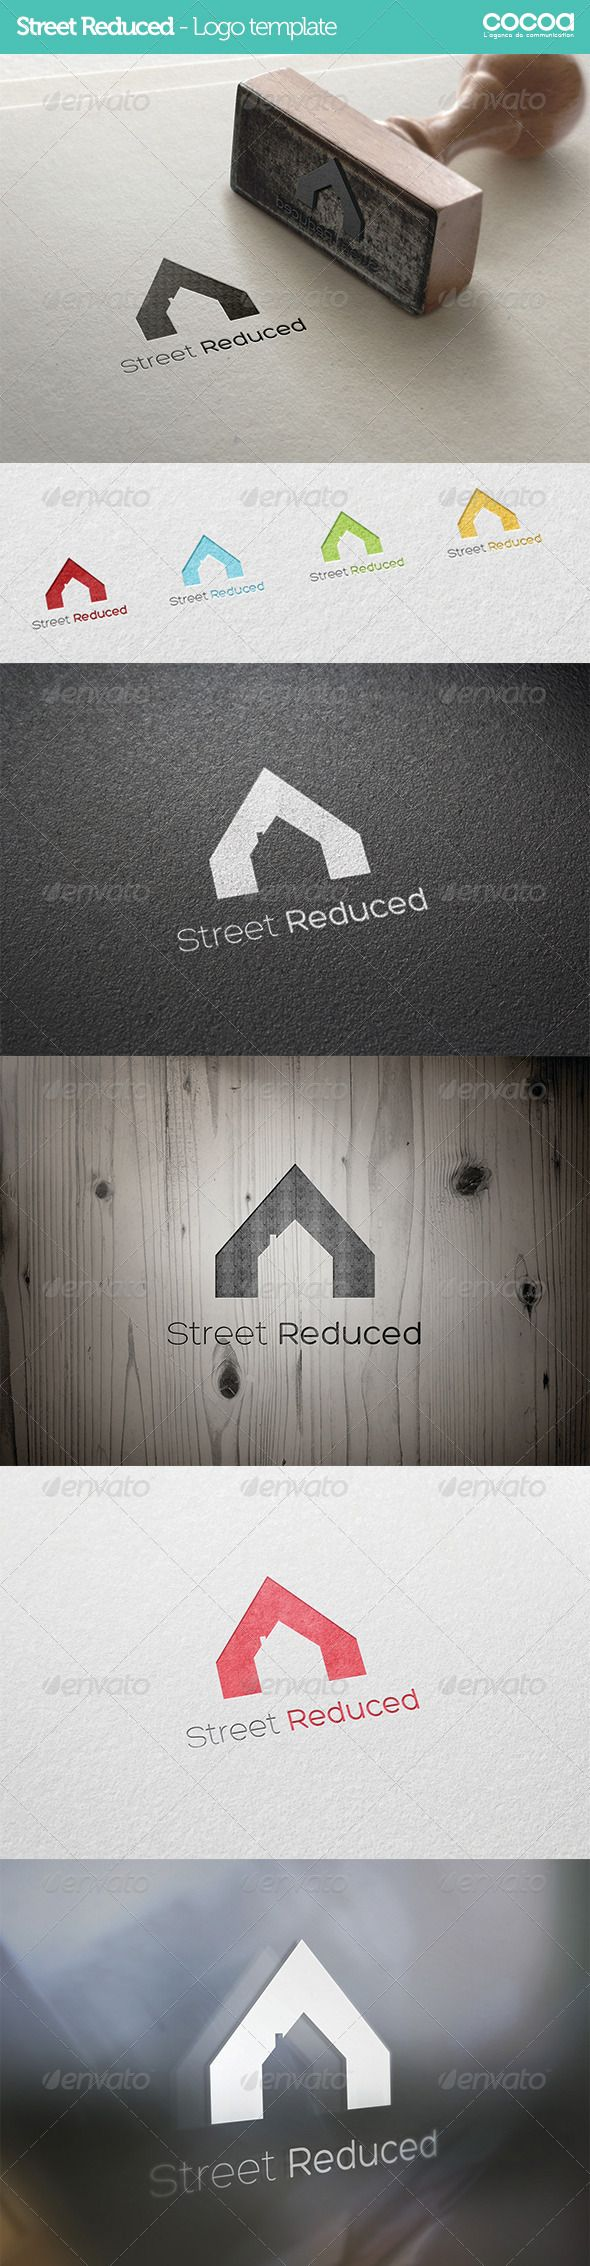 Street Reduced  Logo Template — Vector EPS #commerce #logo template • Available here → https://graphicriver.net/item/street-reduced-logo-template-/6075305?ref=pxcr